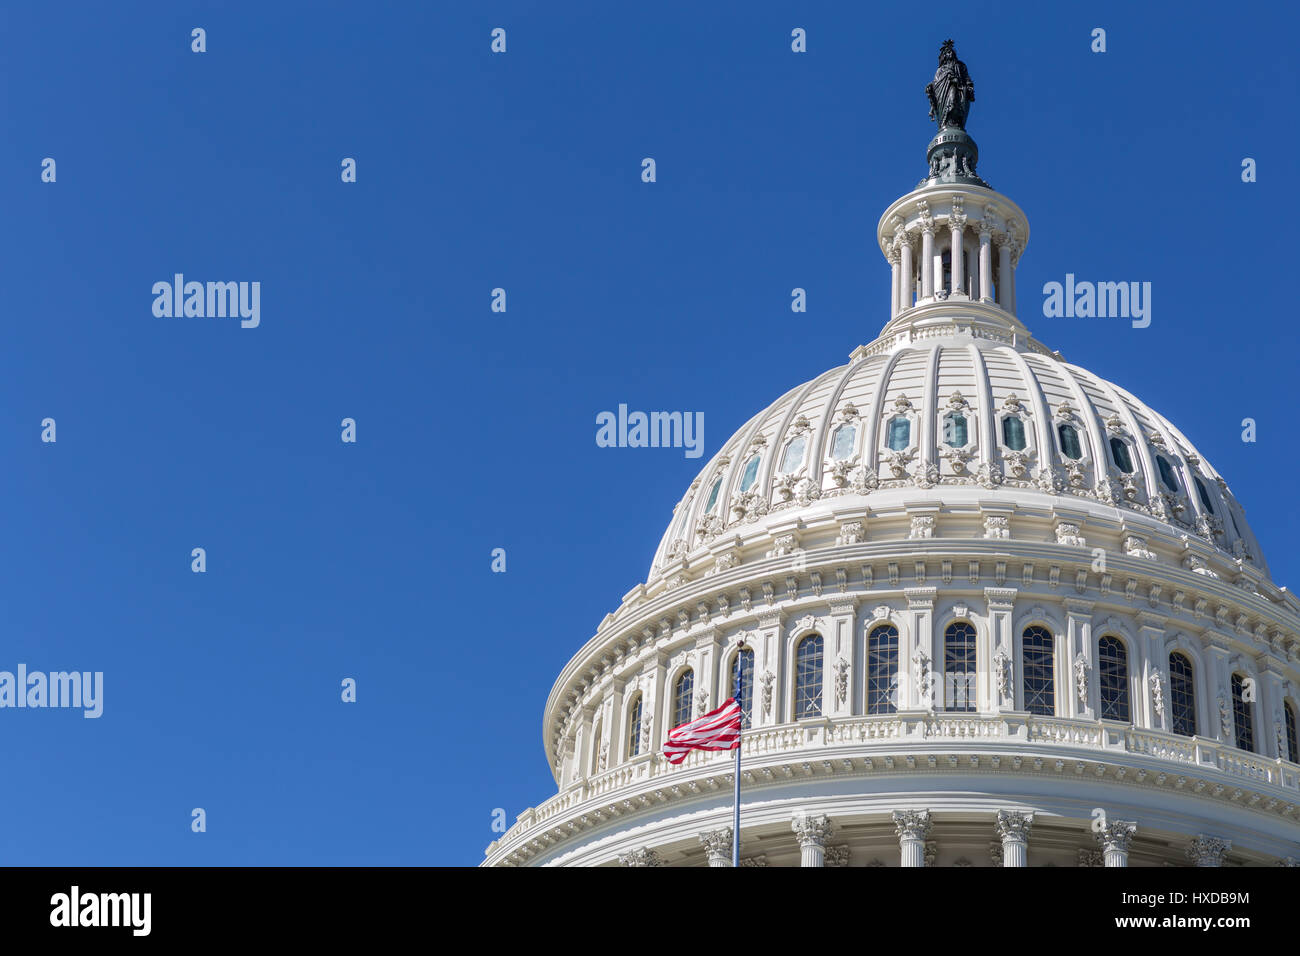 An offset view of the dome of the U.S. Capitol Building in Washington, DC. Stock Photo